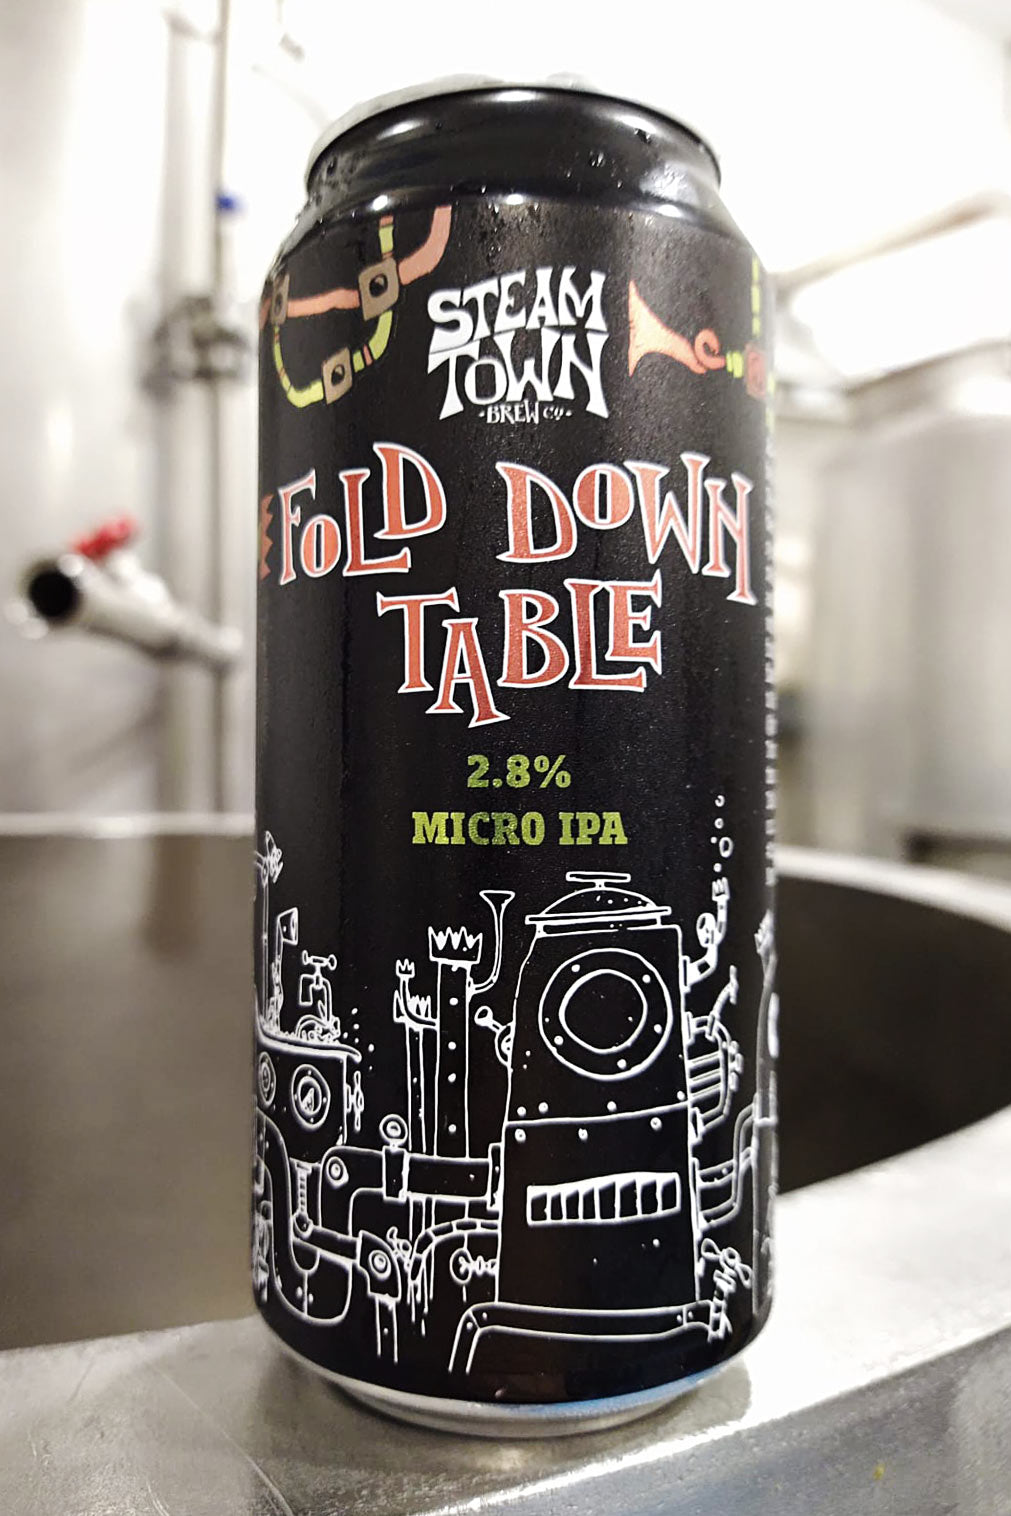 Fold Down Table Micro IPA (2.8%)